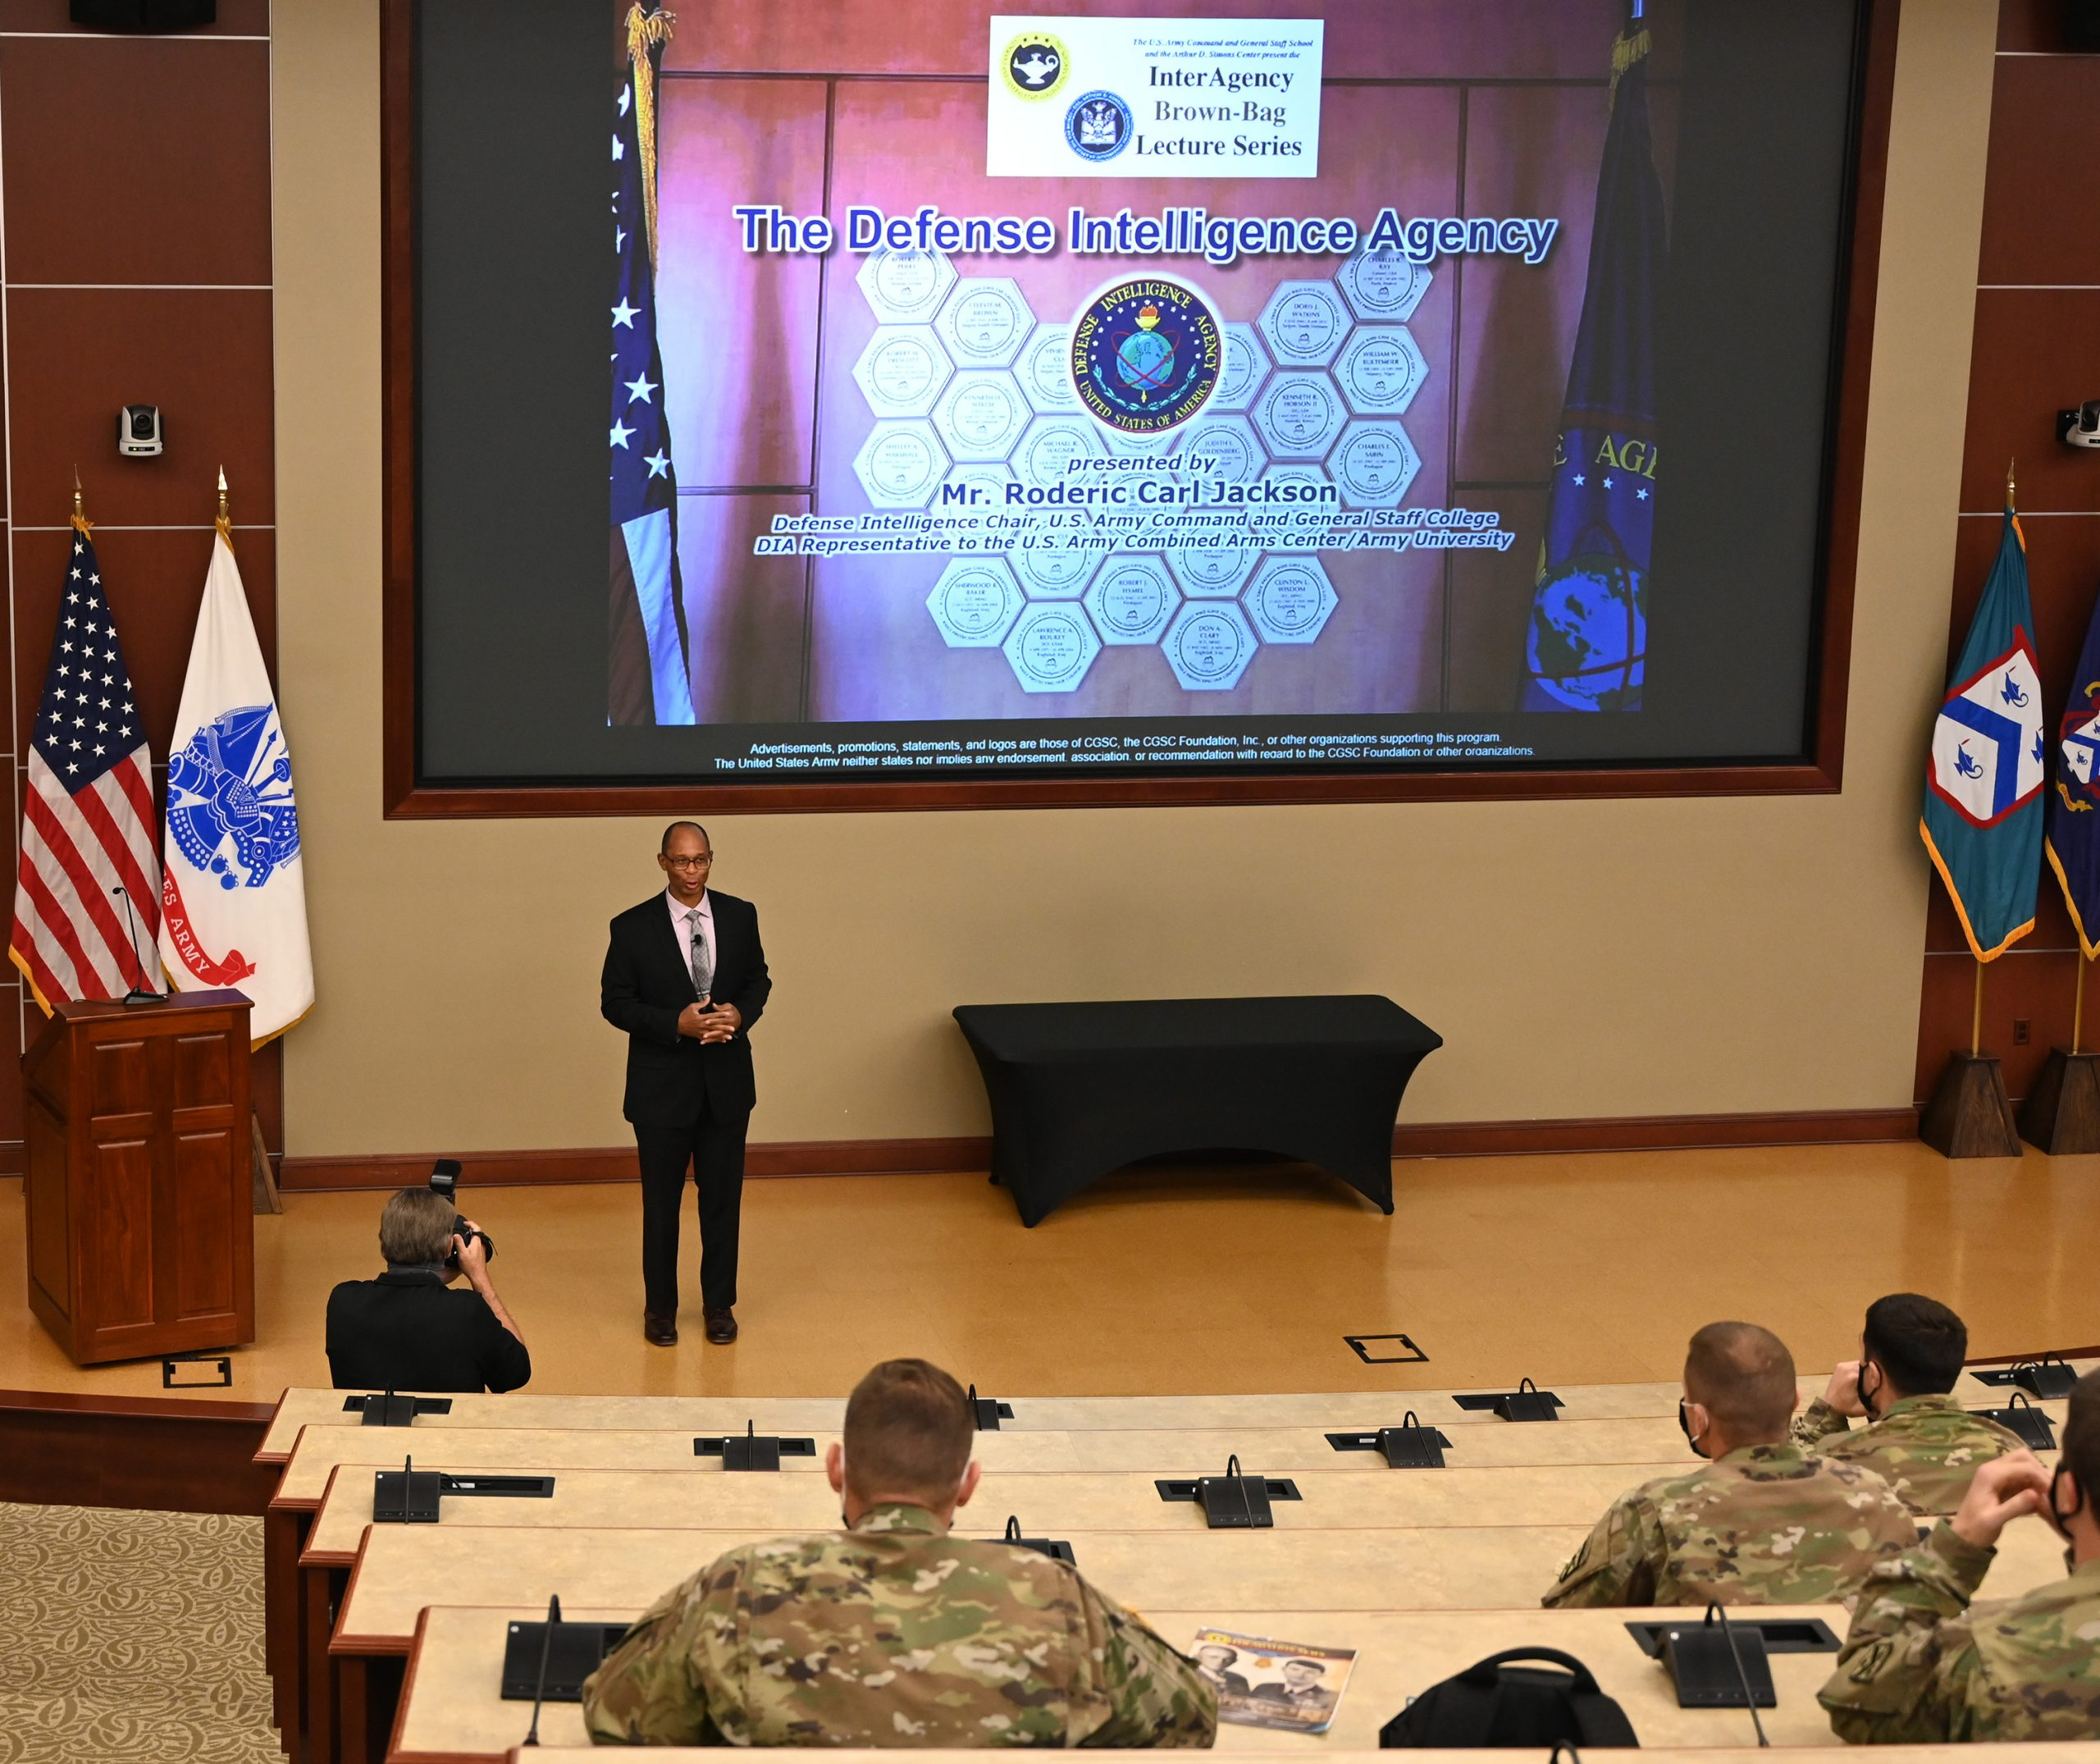 Mr. Roderic C. Jackson, the Defense Intelligence Chair and Defense Intelligence Agency (DIA) Representative to the Combined Arms Center and Army University, leads the discussion in the first lecture of the InterAgency Brown-Bag Lecture Series for CGSC academic year 2021.